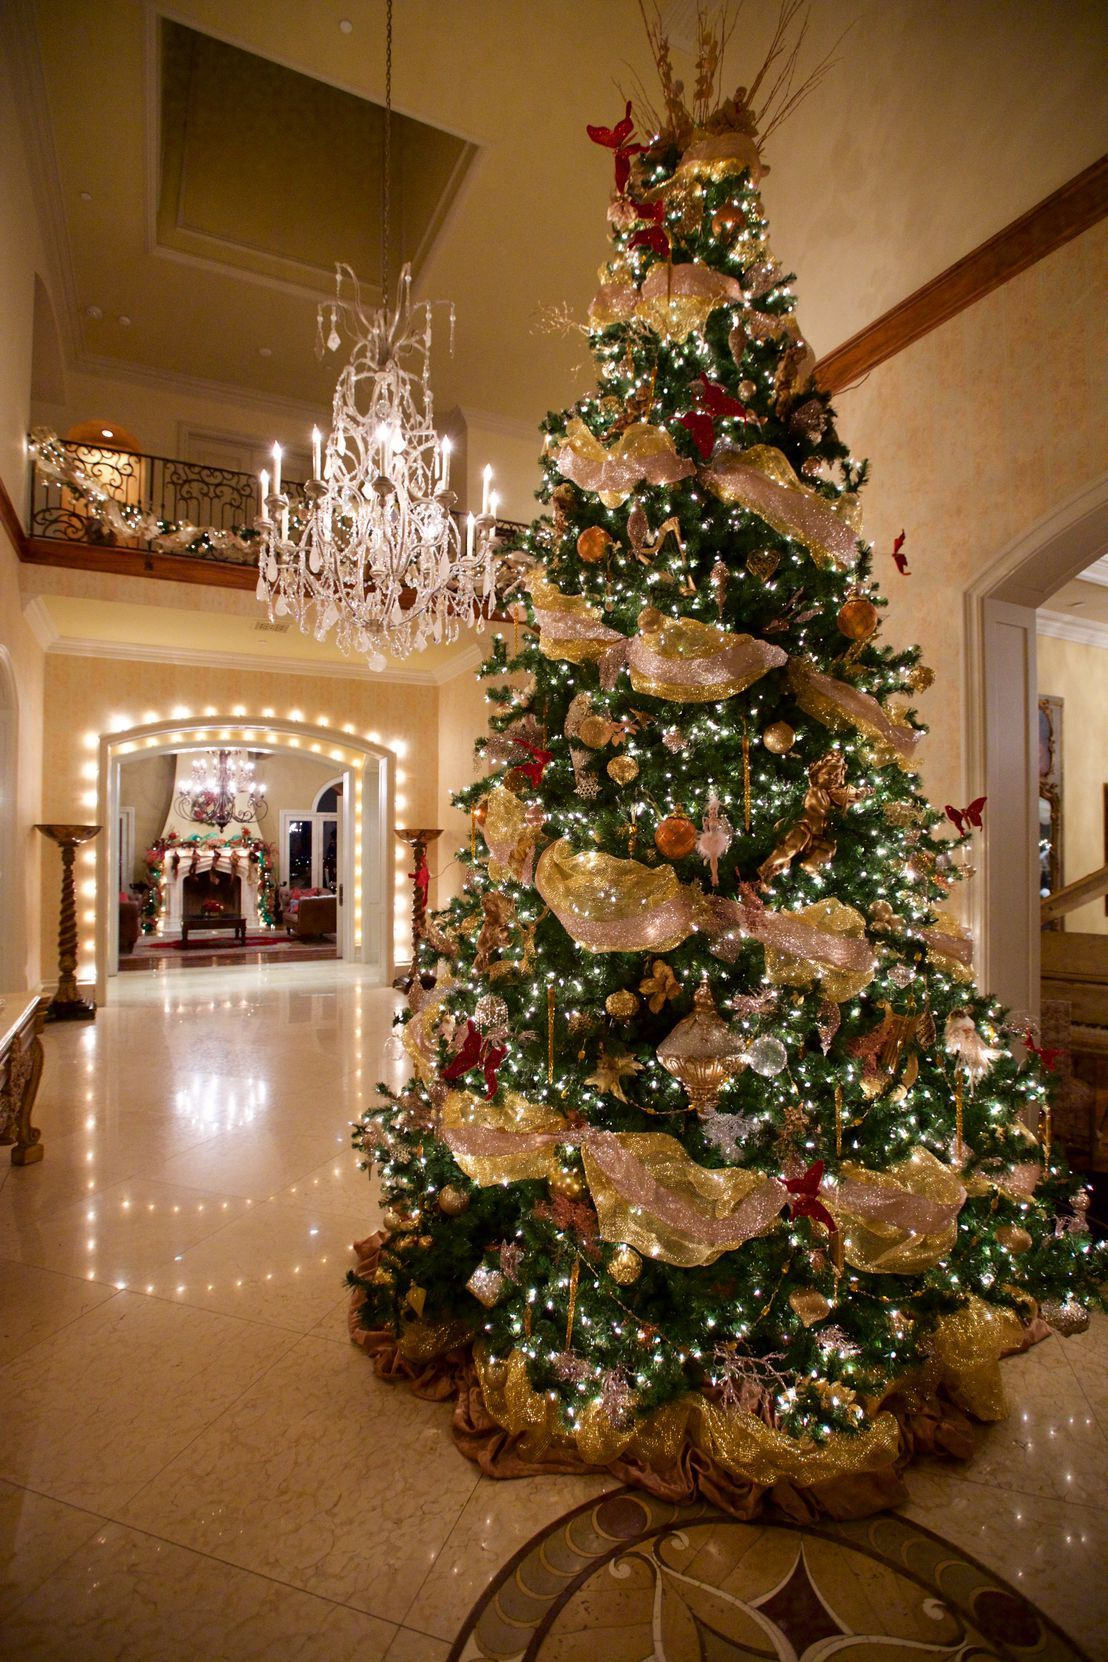 60 Festive Ways To Make A Statement With Your Christmas Tree Elegant Christmas Trees Best Christmas Tree Decorations Gold Christmas Decorations